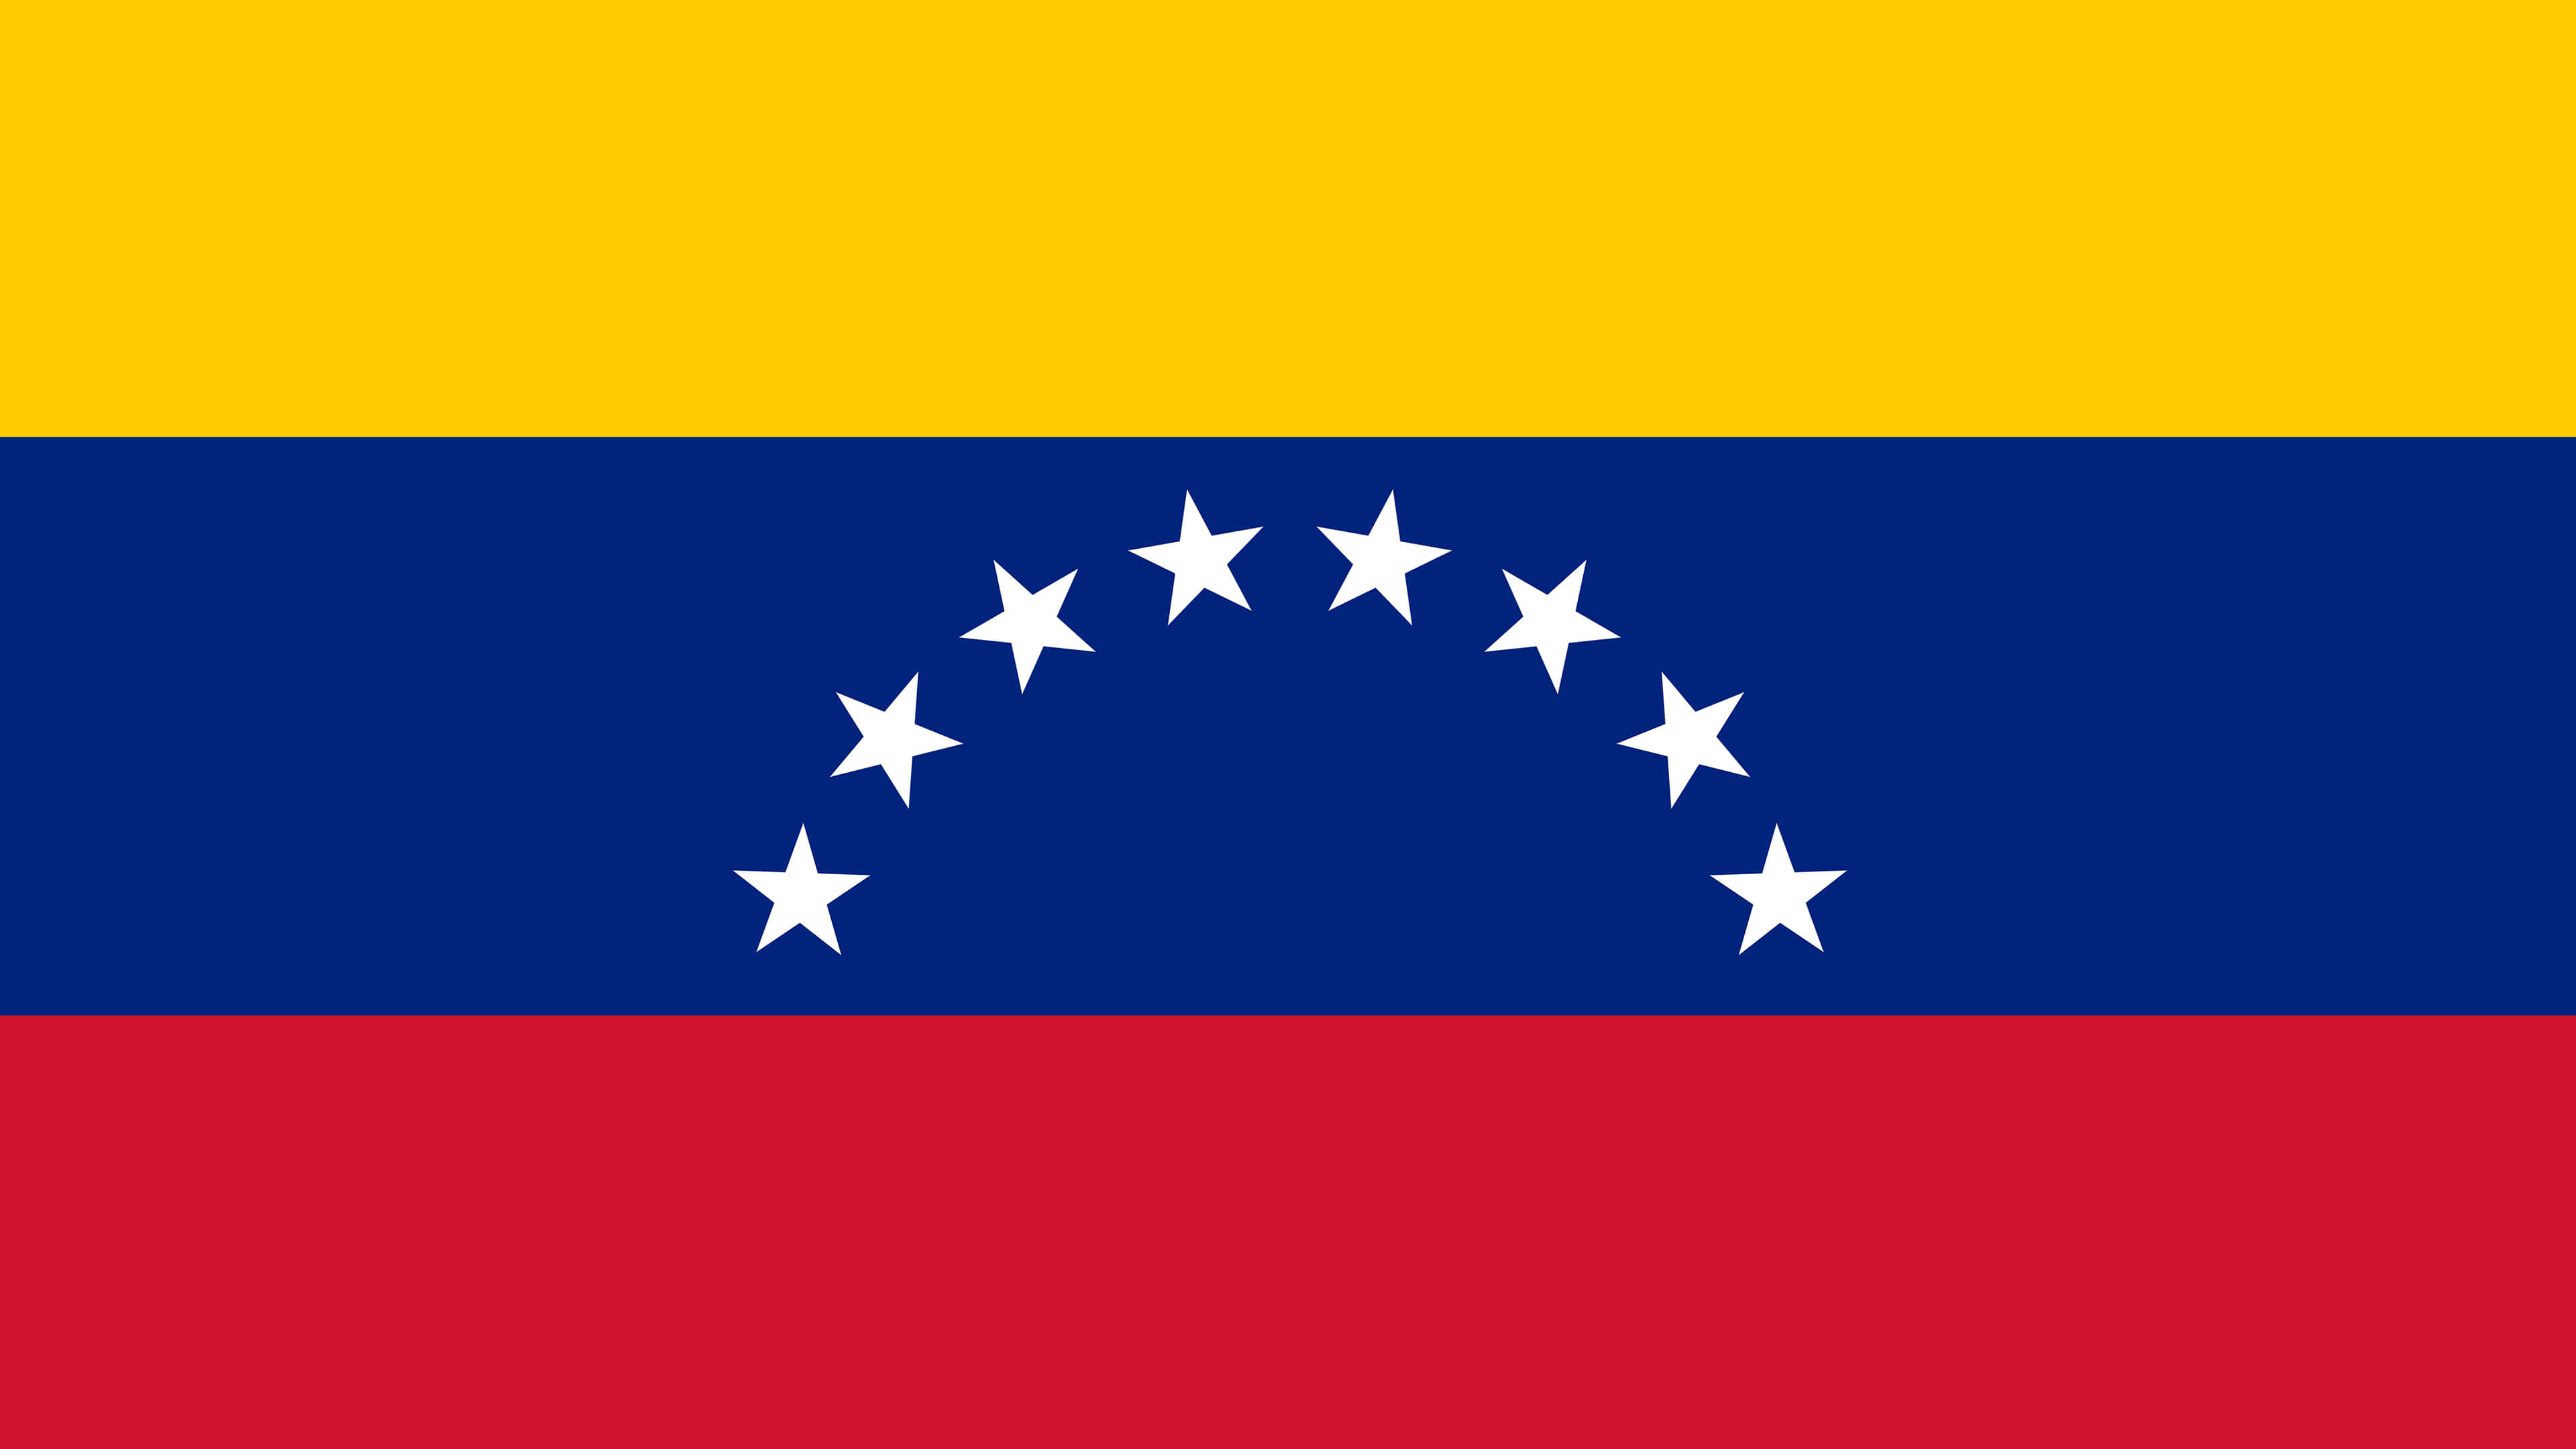 3840x2160 Venezuela Flag Wallpapers